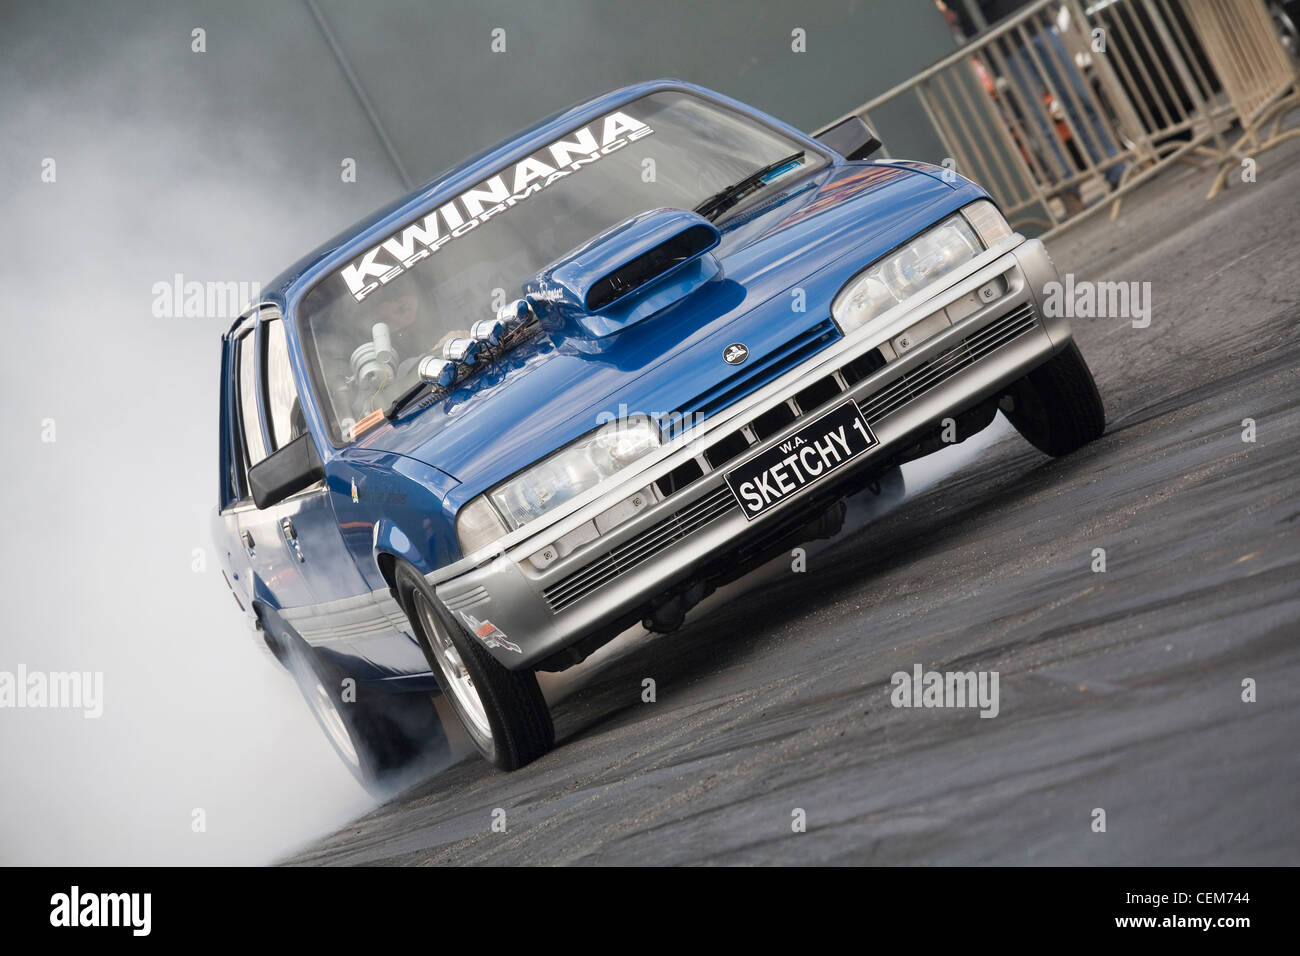 Car Spinning Wheels Stock Photos Images Wiring Up A Street Race Australian Holden Commodore Drag Racing Performing Burnout To Heat The Rear Tires